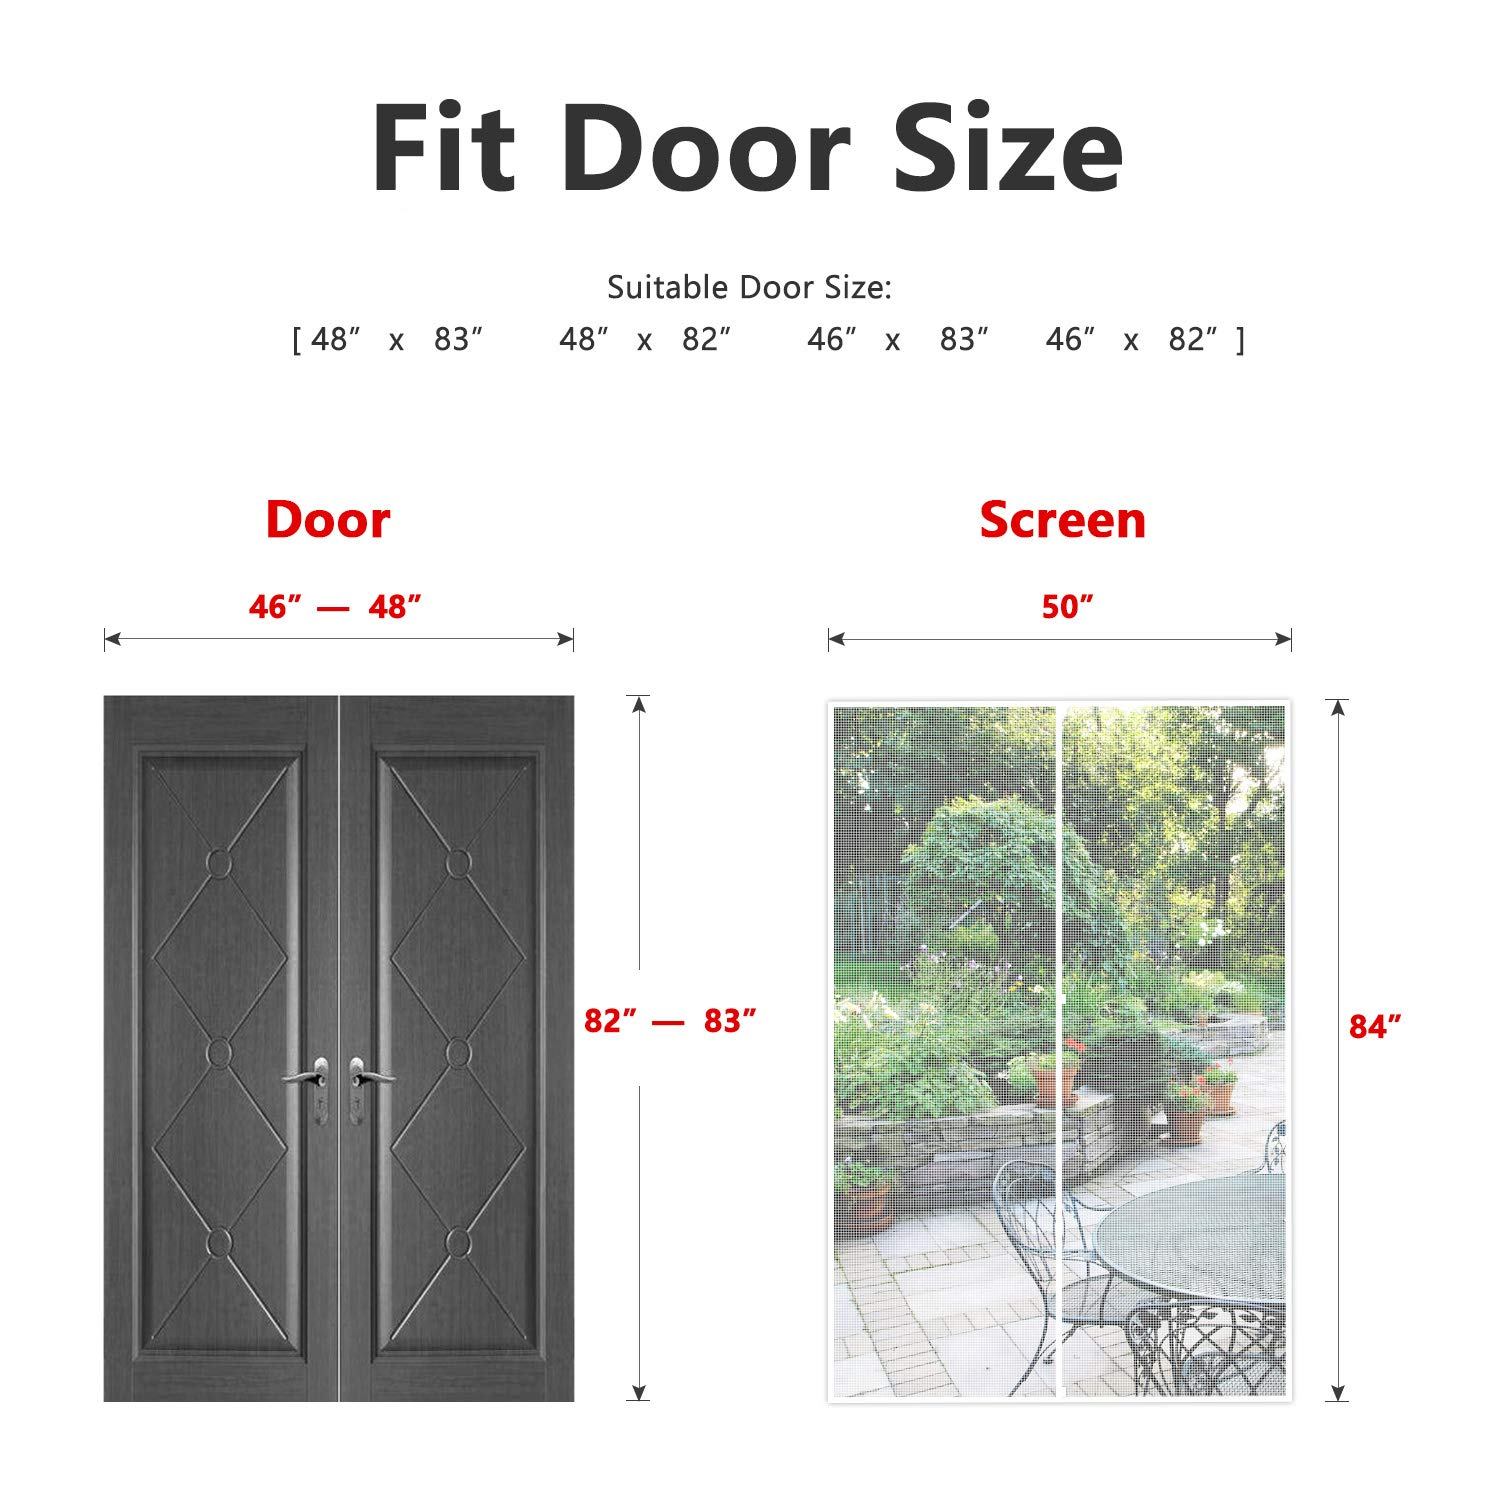 Magnetic Mesh Curtain with Heavy DutyFits Door Size up to 34x82 Max-White MAGZO Magnet Screen Door 34 x 82